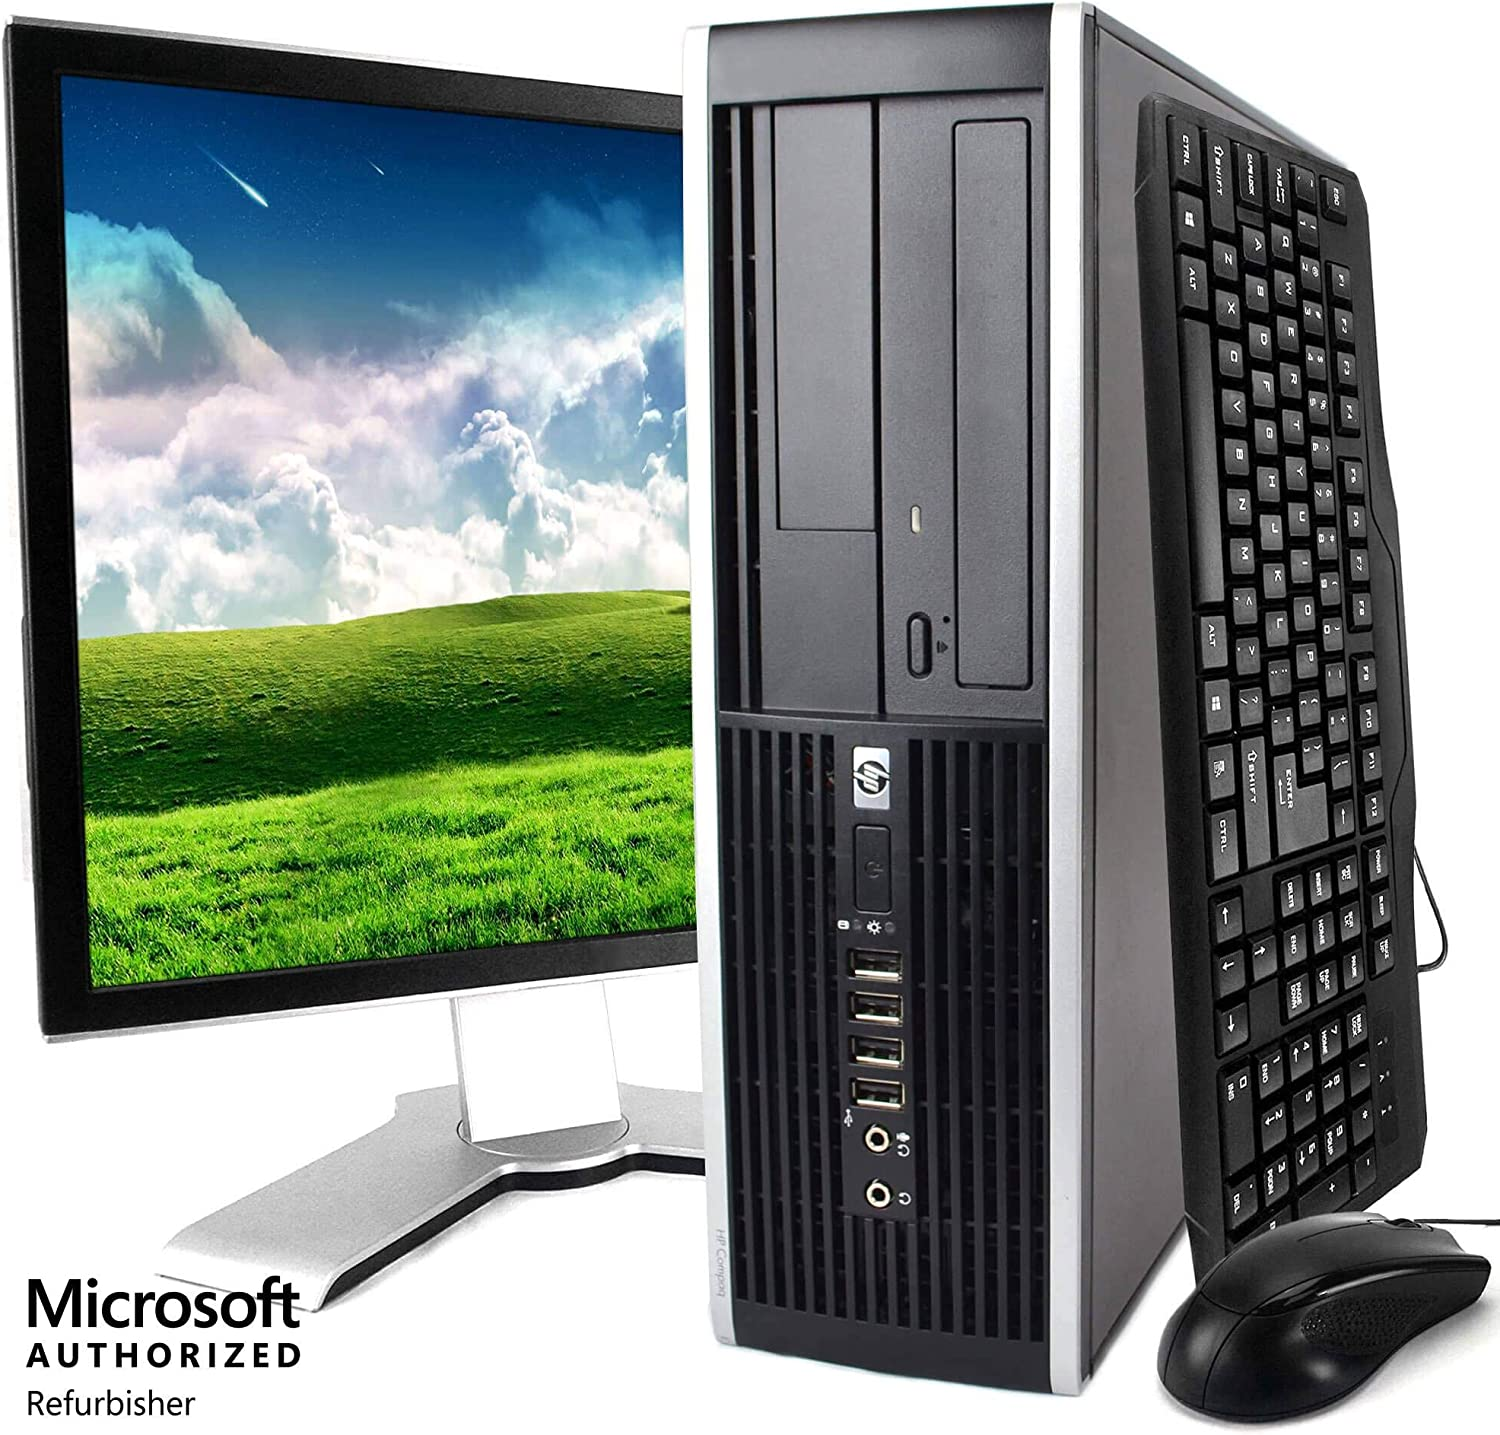 "HP Elite Desktop, Intel Core 2 Duo Processor, 8 GB RAM, 500 GB Hard Drive, DVD-ROM, Wi-Fi, Windows 10 Home, 19"" LCD Monitor (Renewed)"